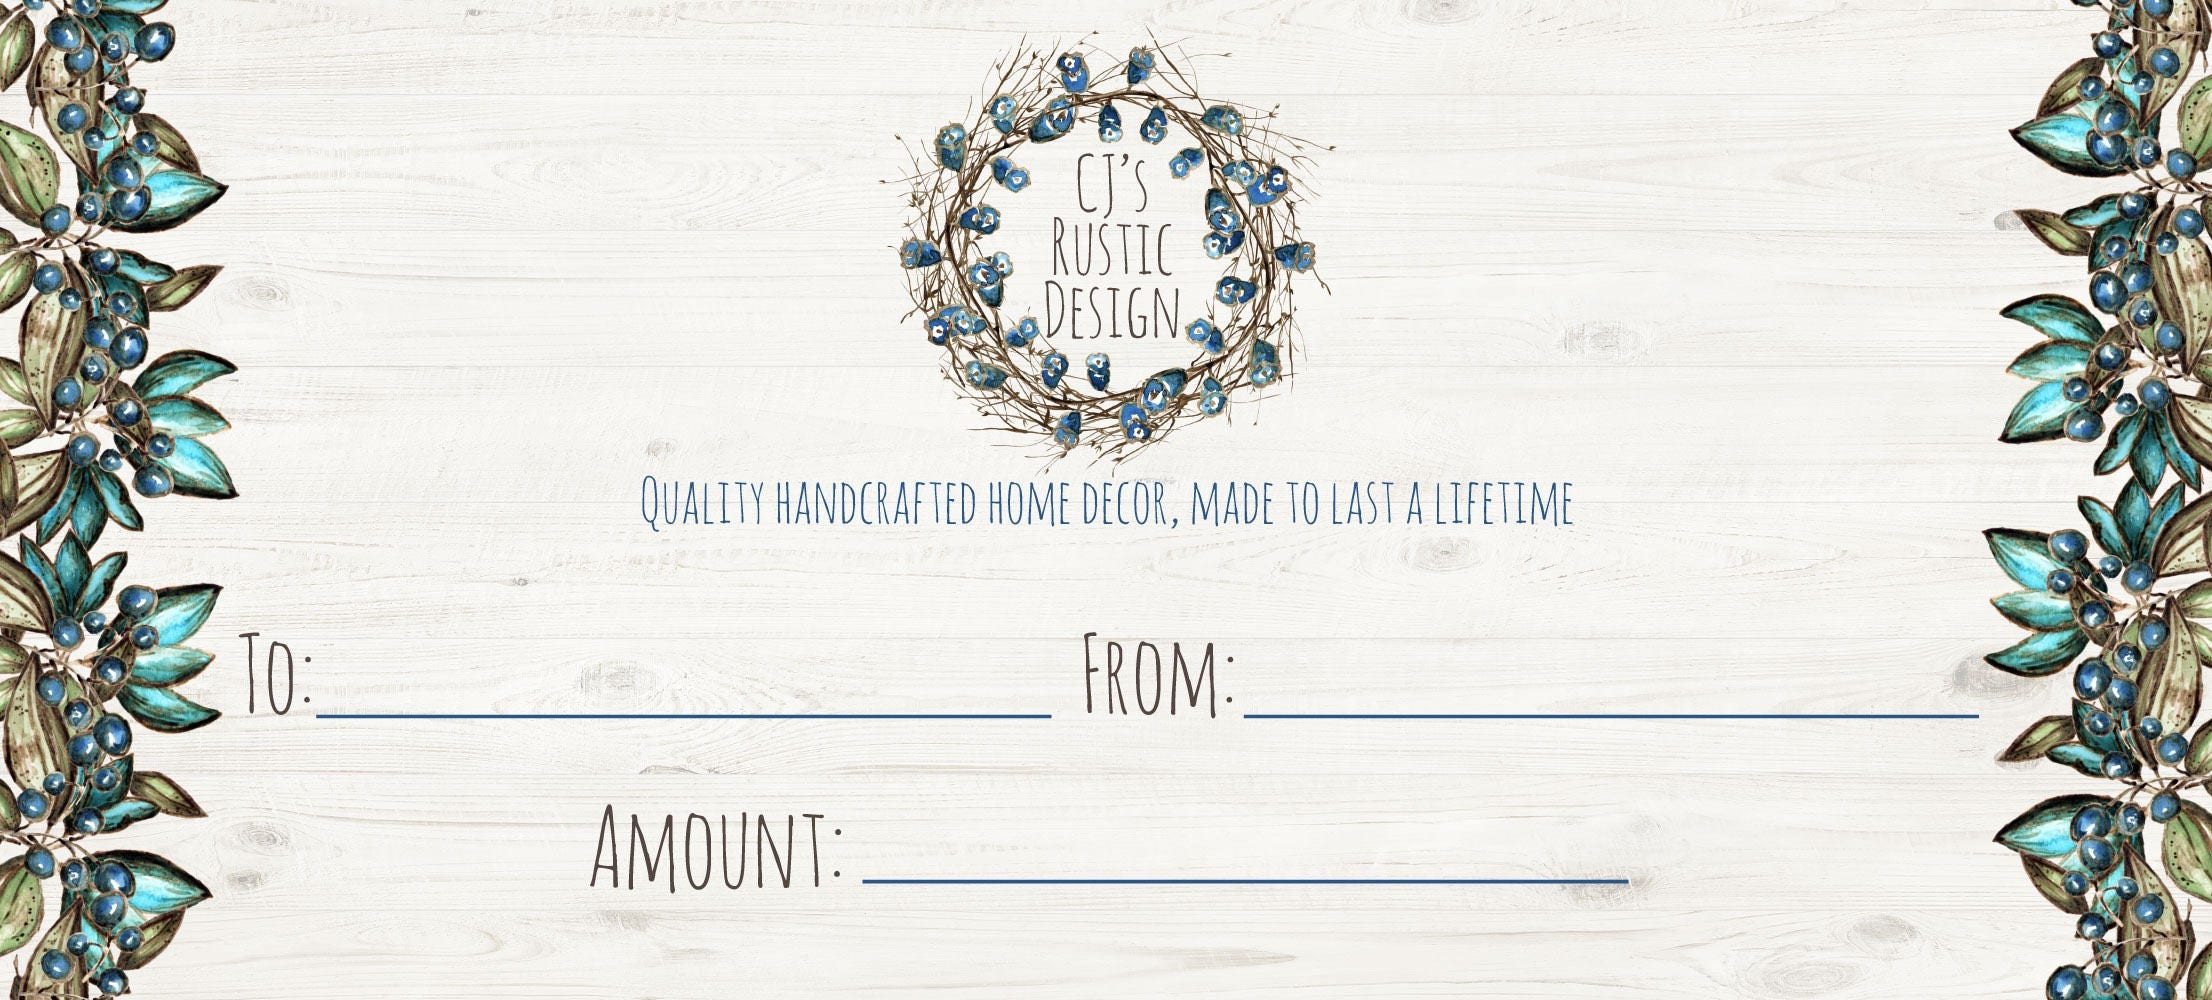 Gift certificate gift certificate printable gift certificate gallery photo gallery photo gallery photo 1betcityfo Choice Image